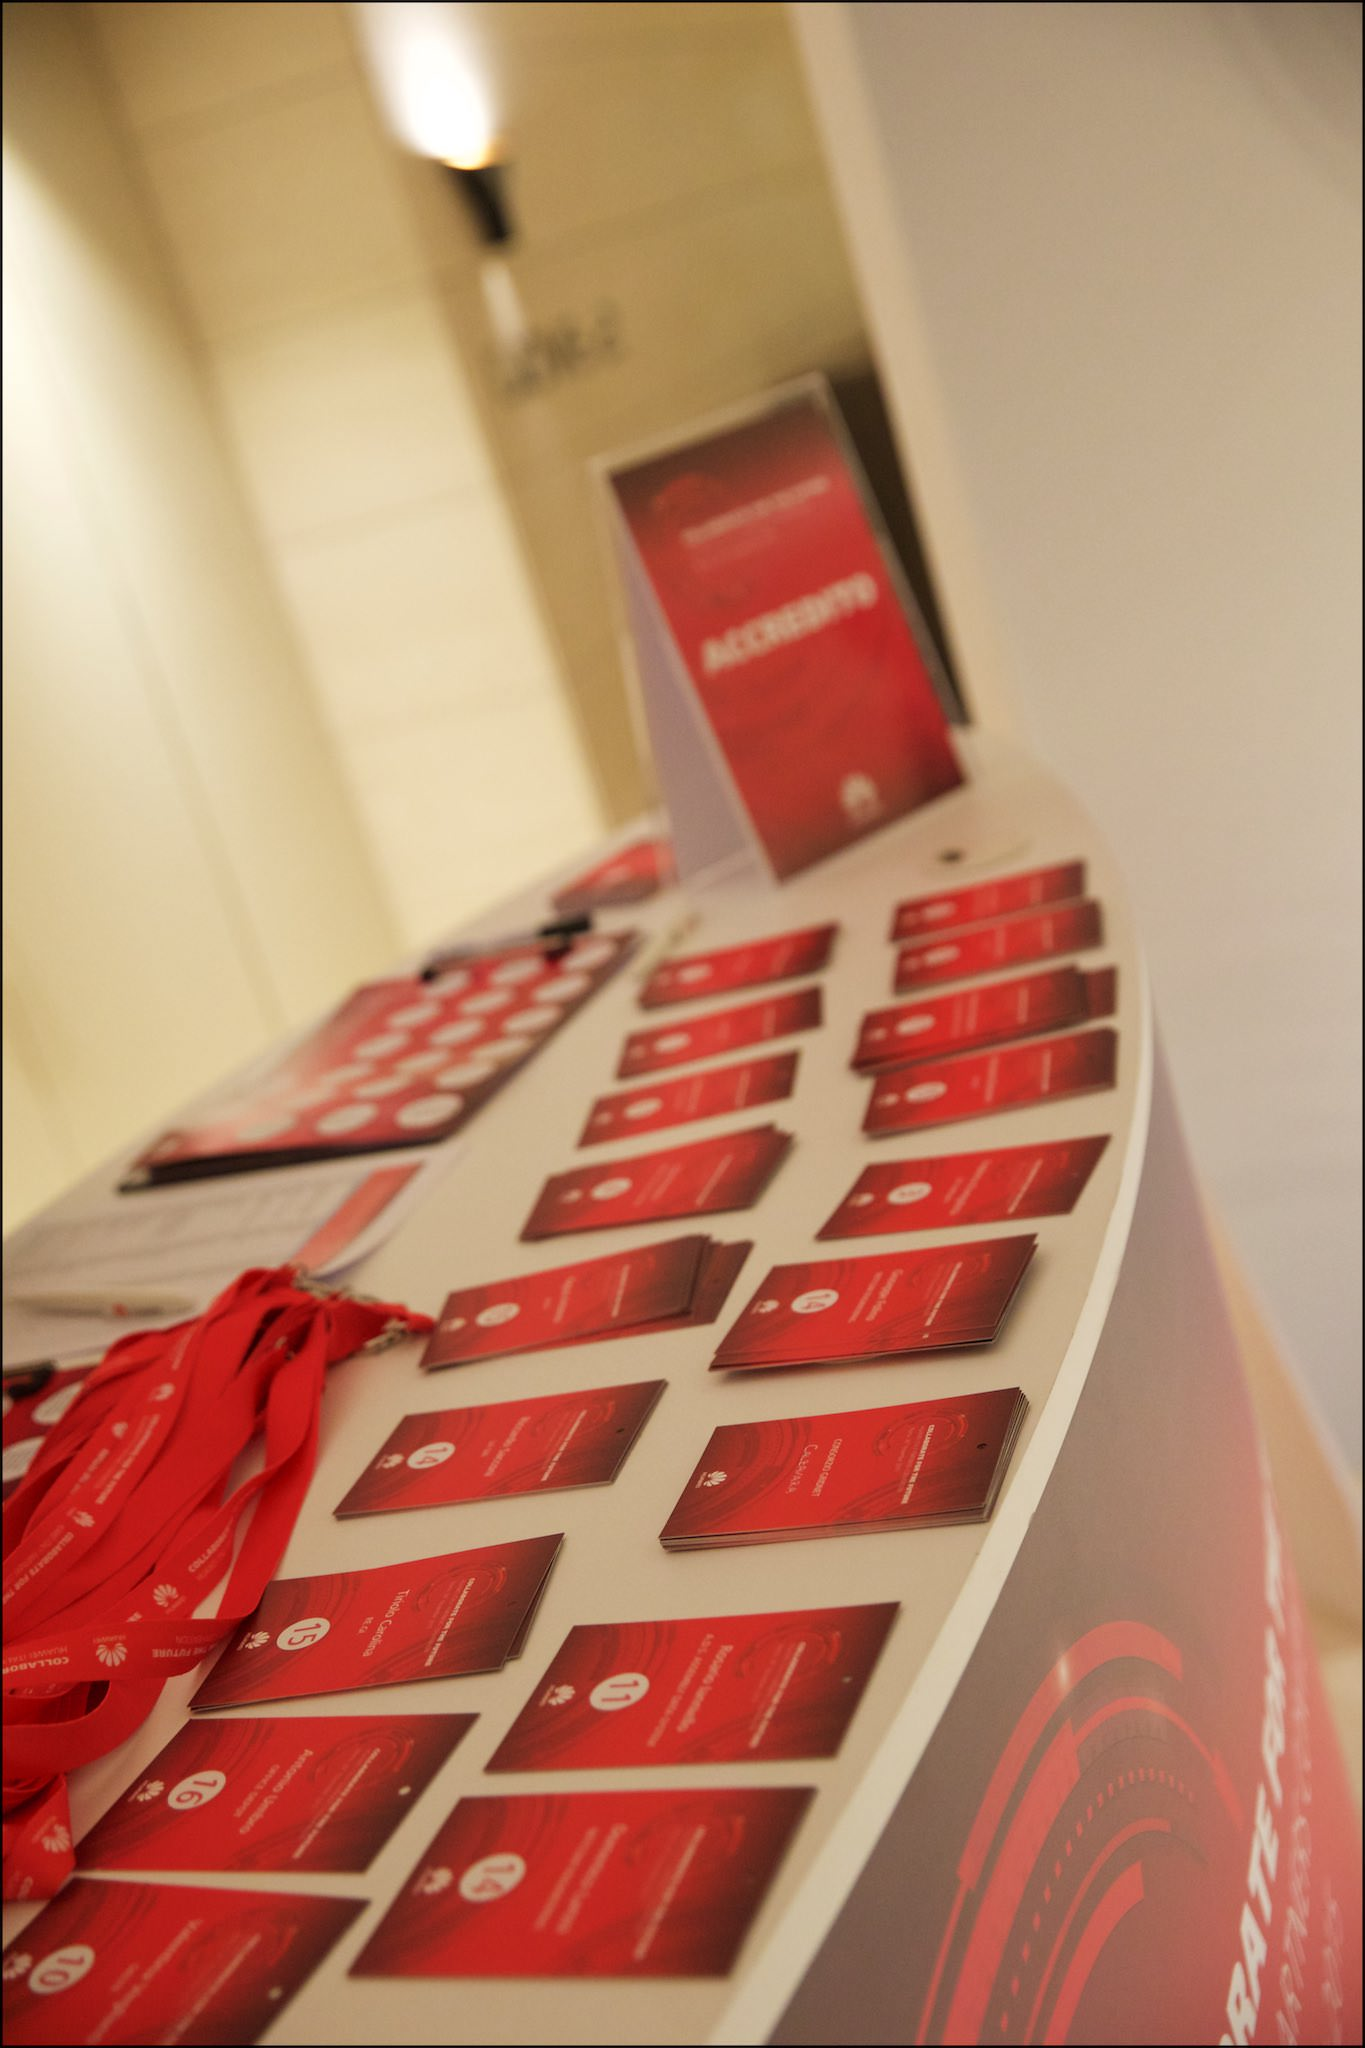 HUAWEI ITALY PARTNER CONVENTION (2)